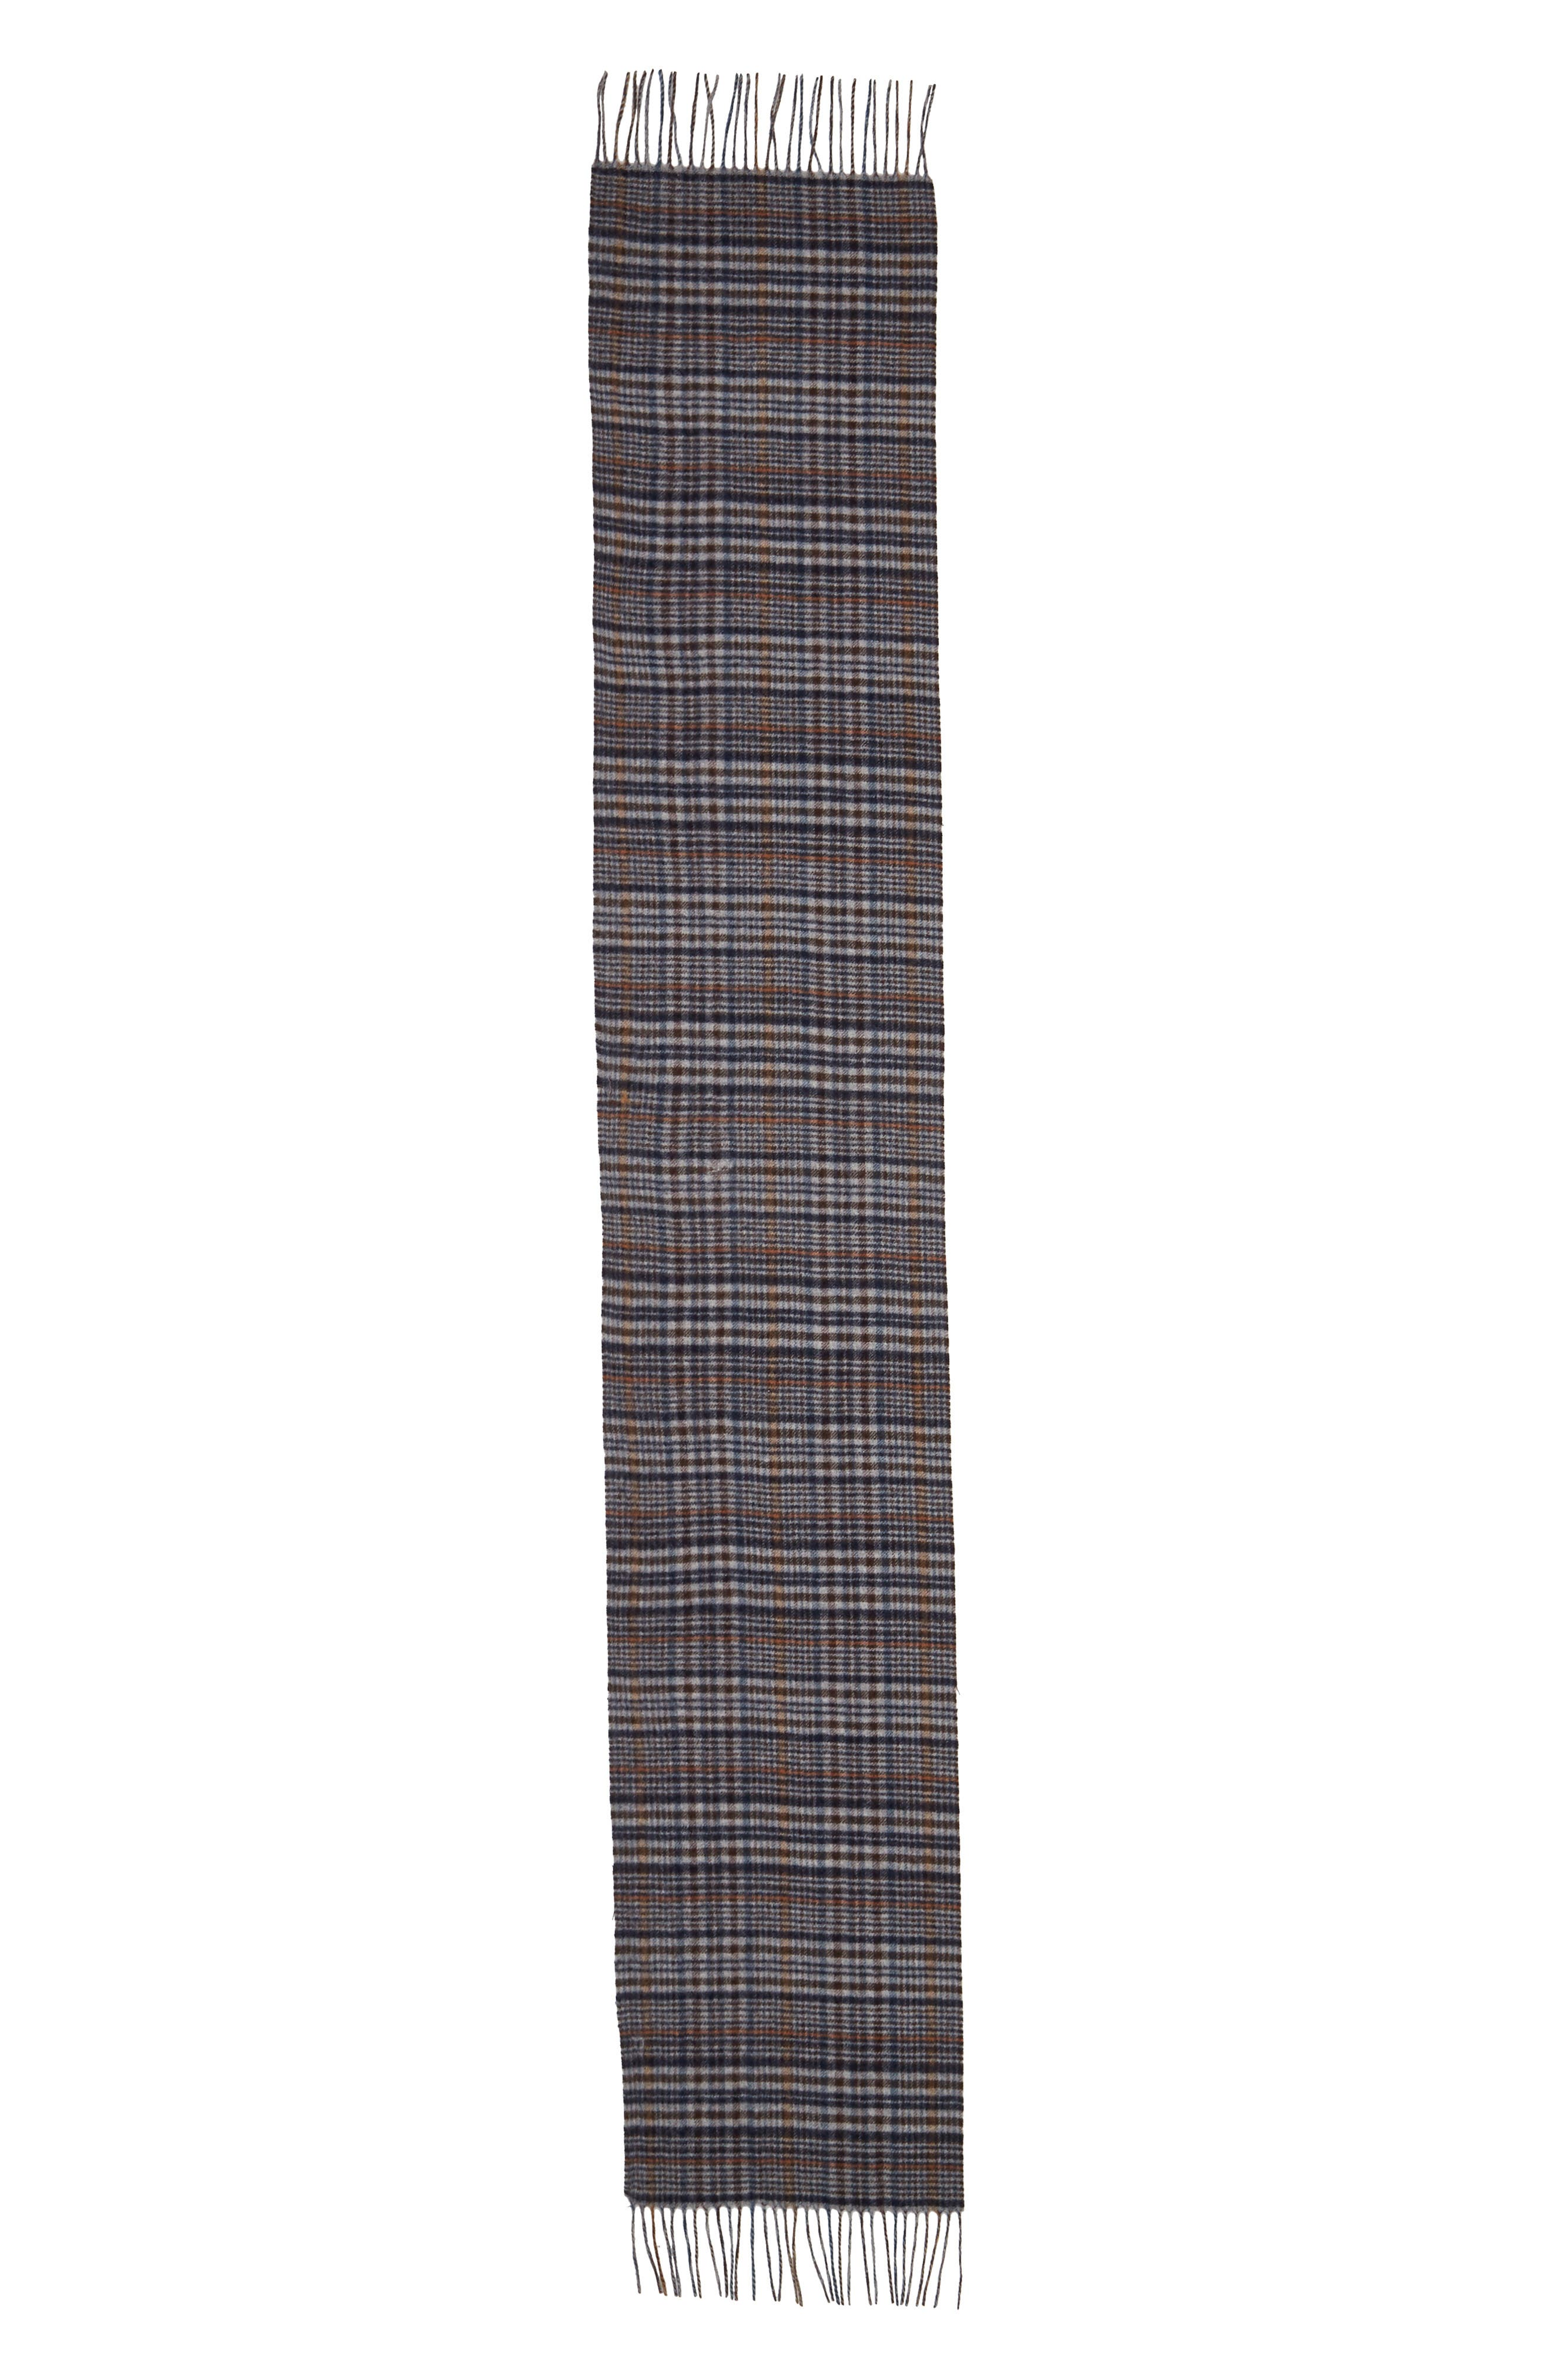 Tattersall Cashmere Scarf,                             Alternate thumbnail 2, color,                             BLACK/ BROWN